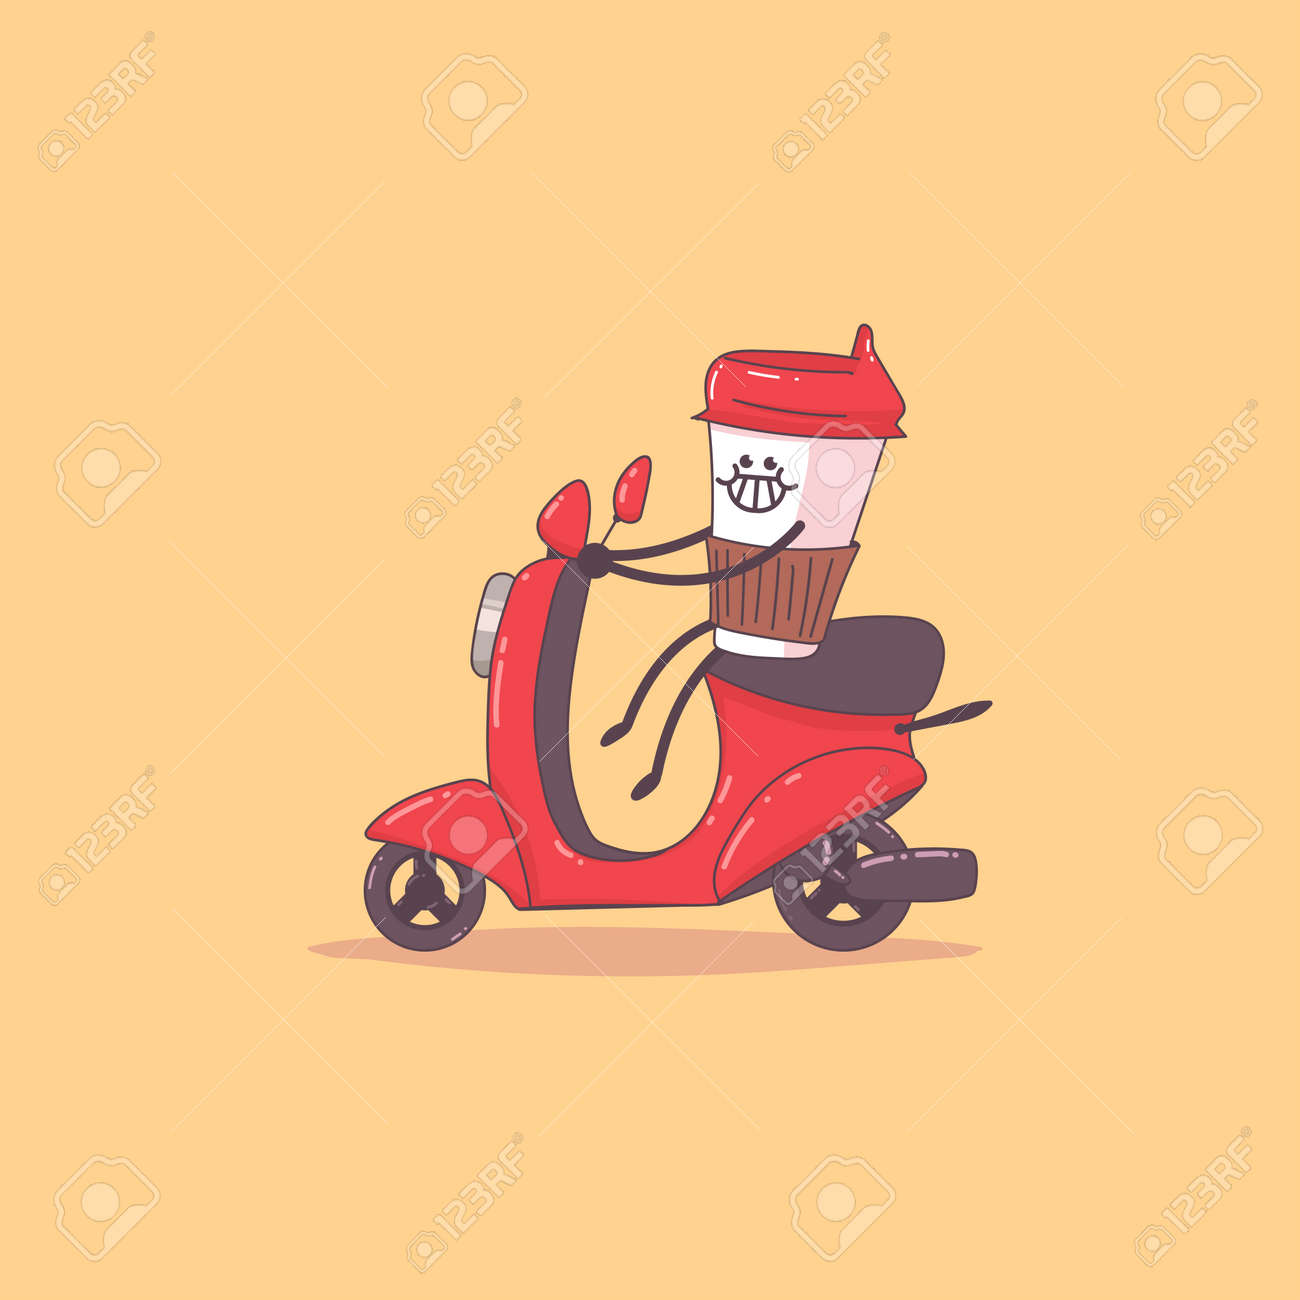 Coffee delivery. Cute courier character on the moped. Vector cartoon illustration isolated on background. - 172749698